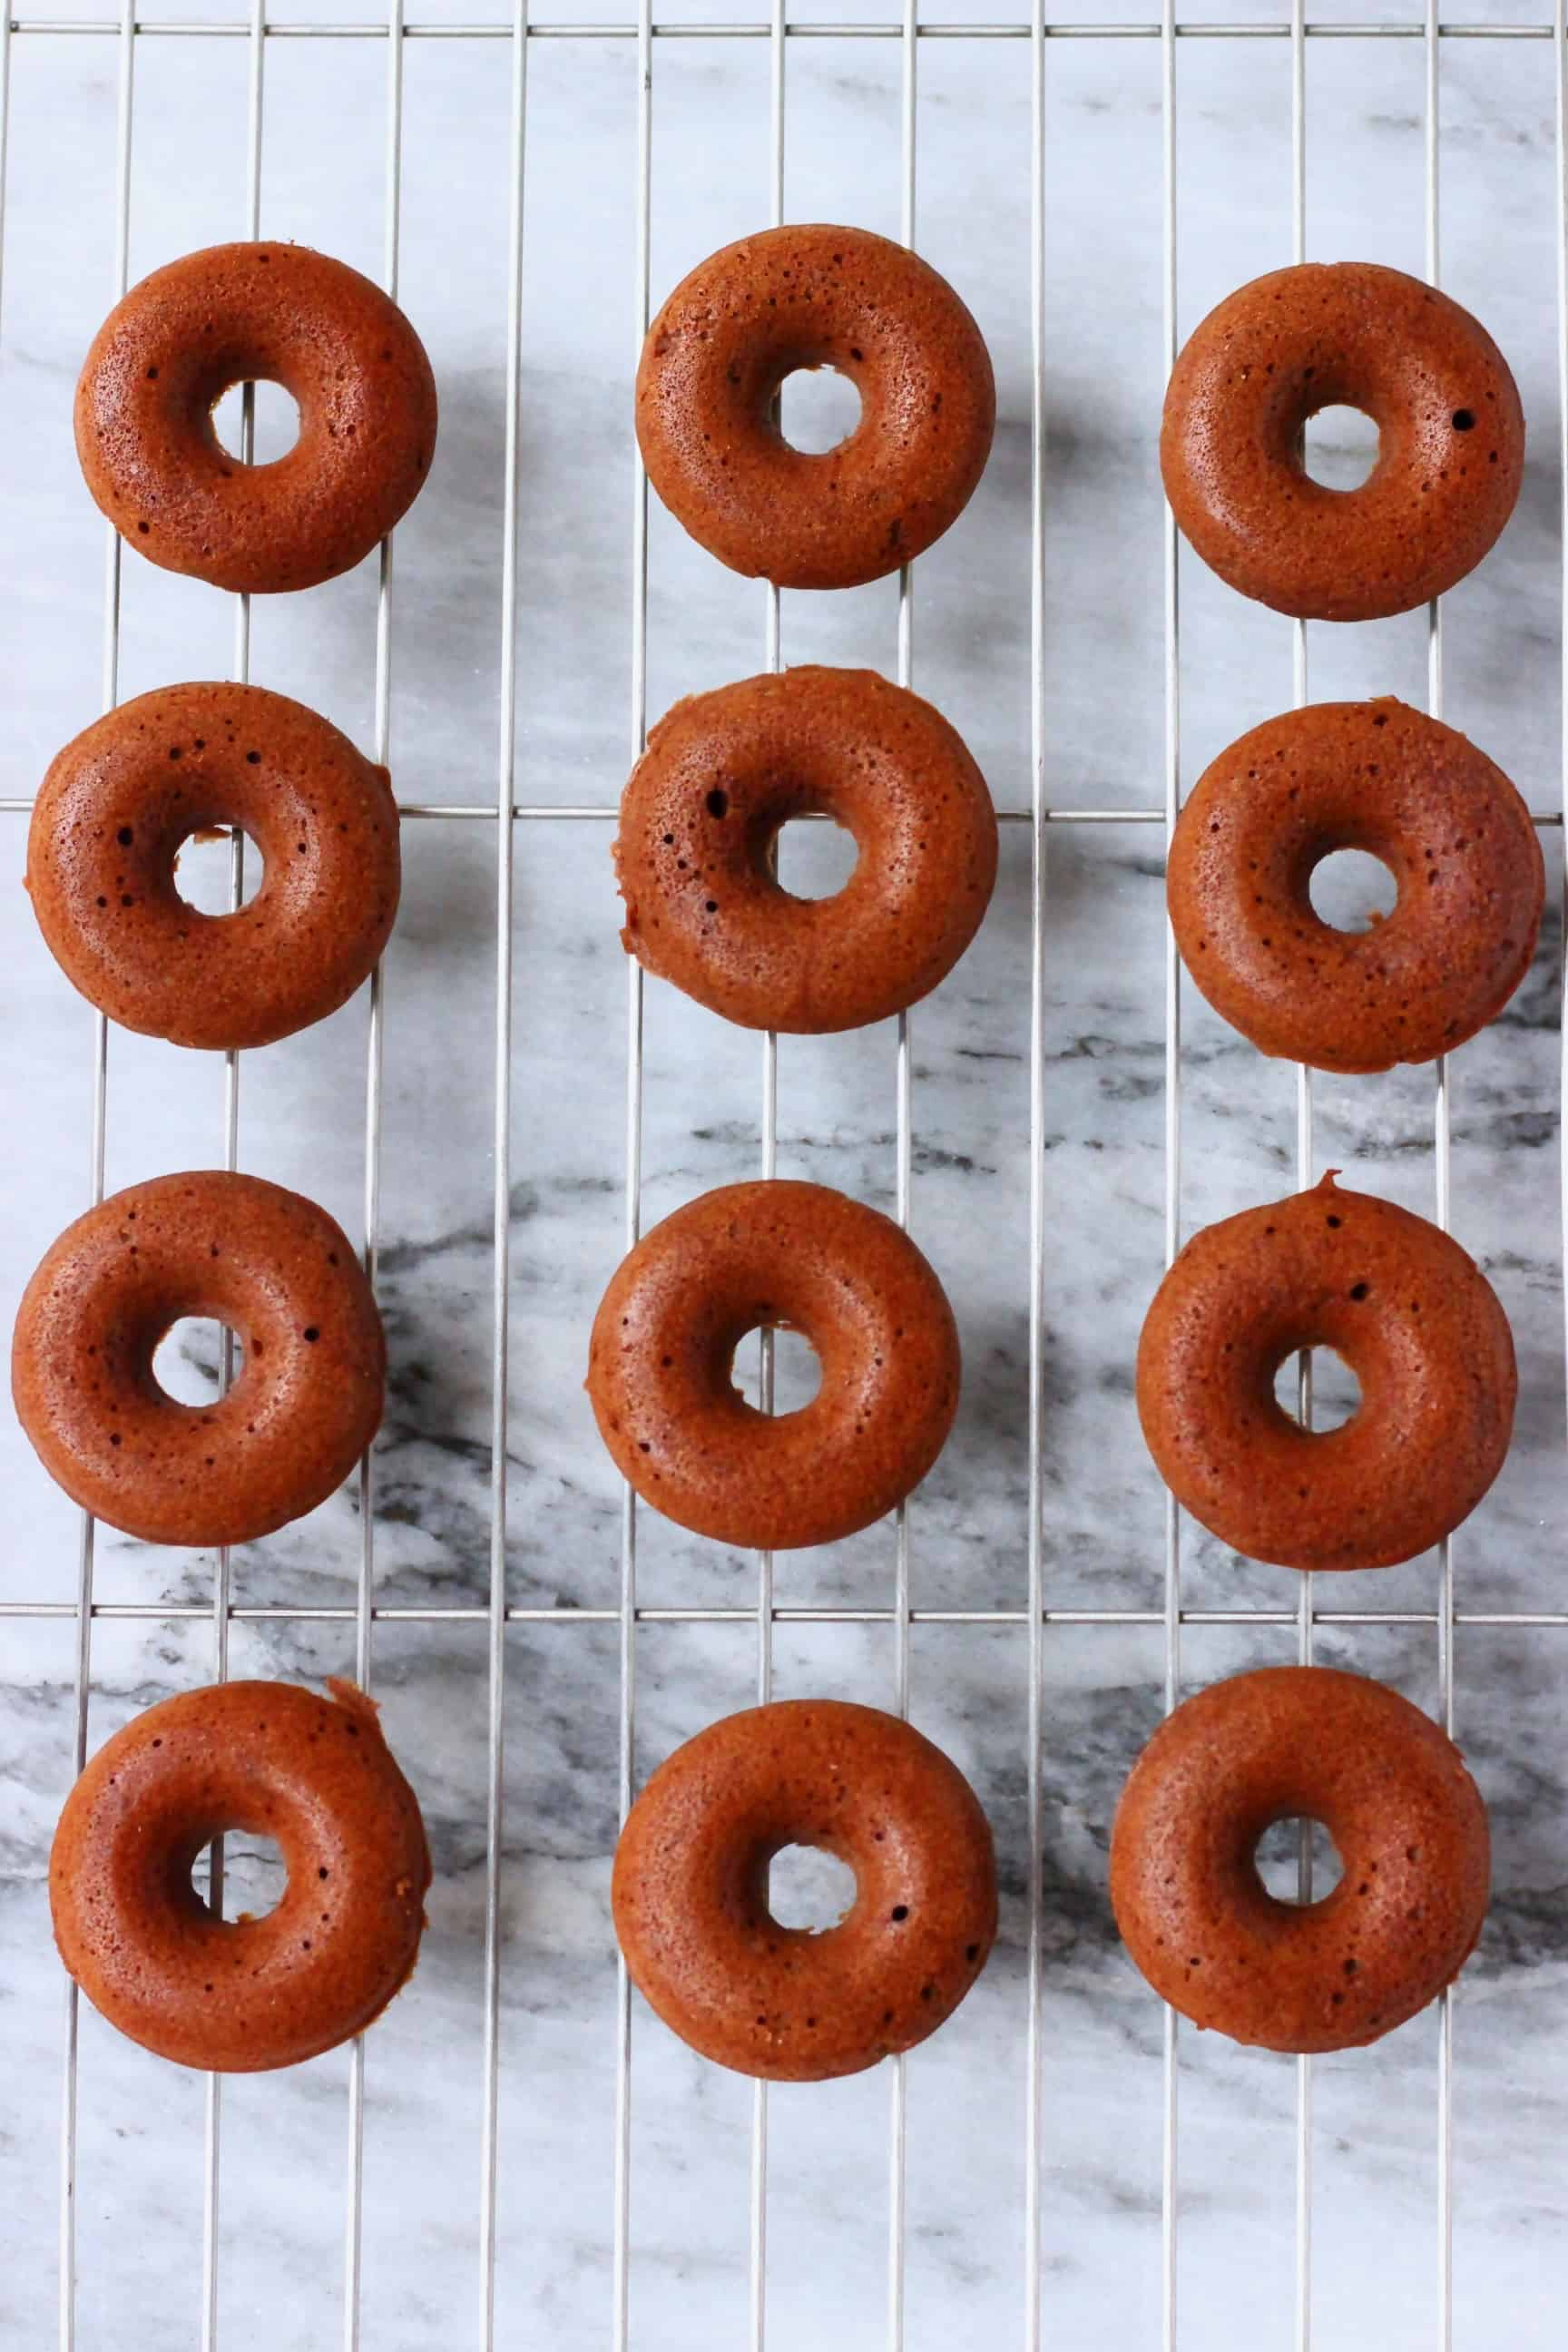 Chocolate mini donuts on a wire rack against a marble background